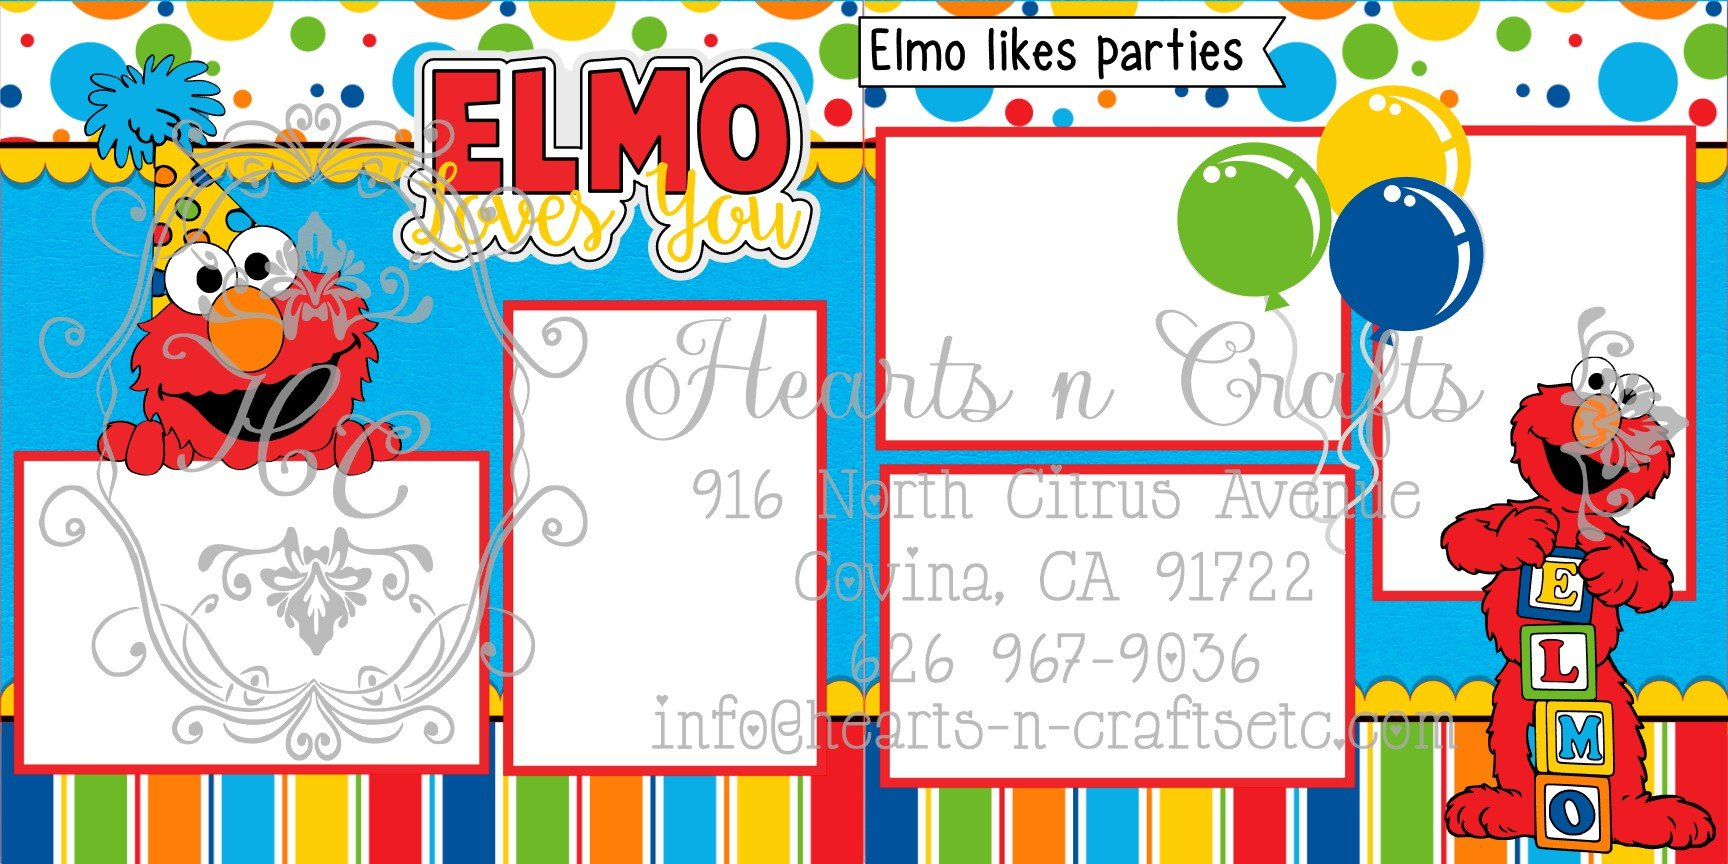 Elmo Loves You 2 Page Layout